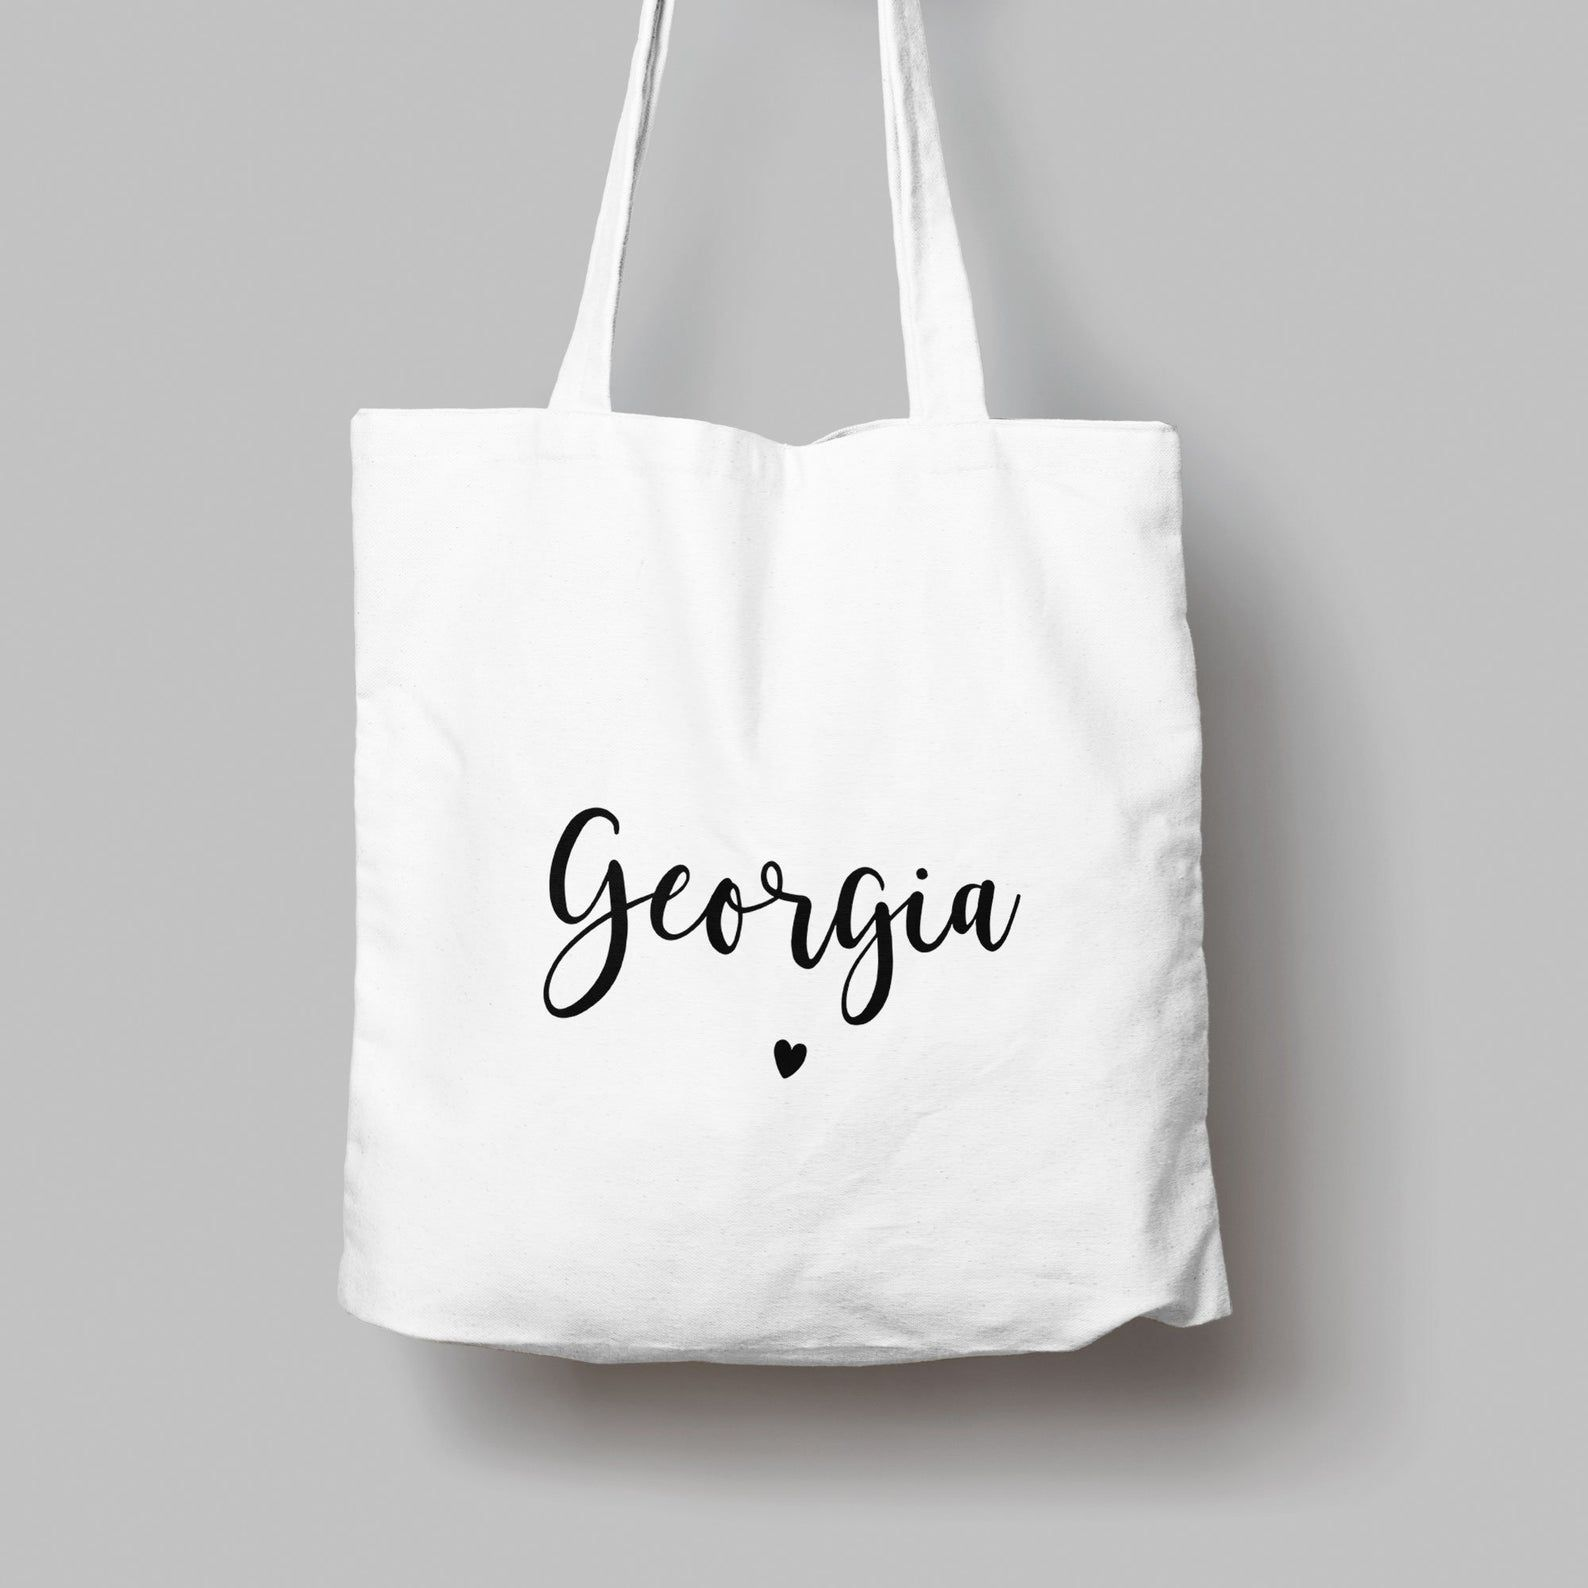 BRIDE TO BE ENGAGEMENT WEDDING TOTE SHOPPER SHOPPING BAG PERSONALISED HEN GIFT